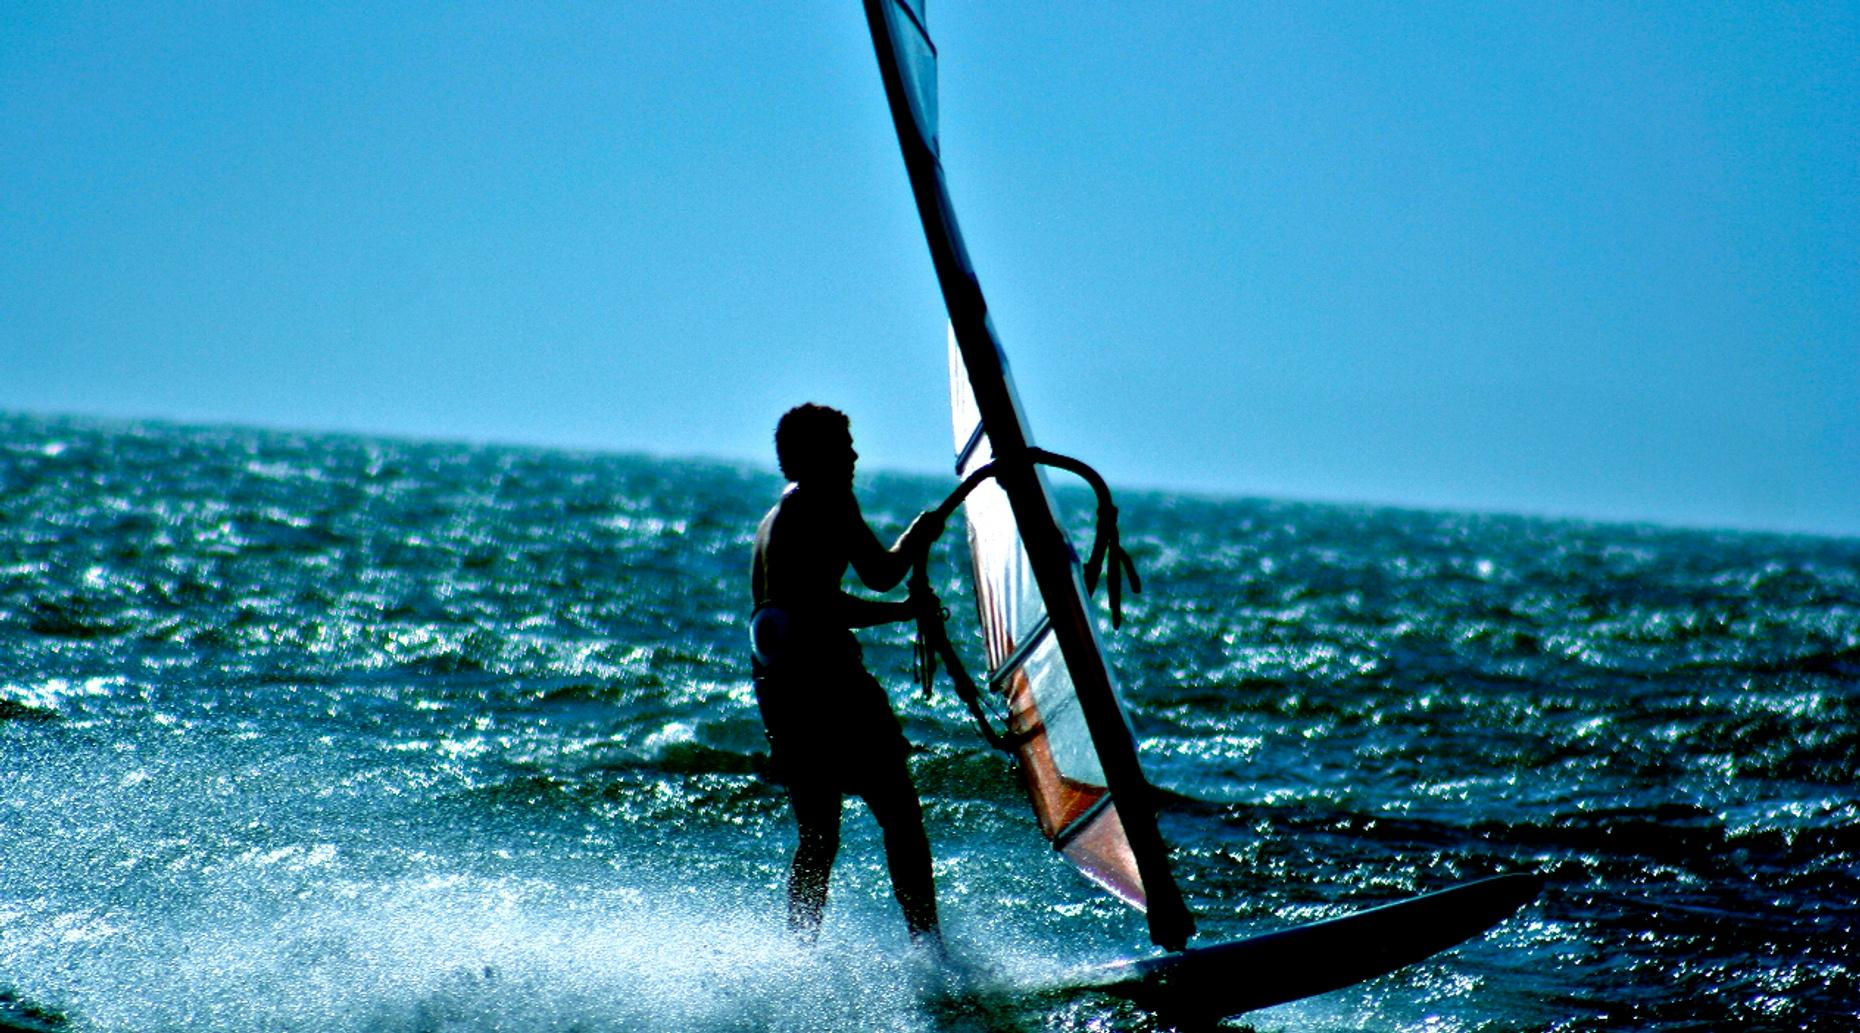 Private Advanced Windsurf Lesson in Avon